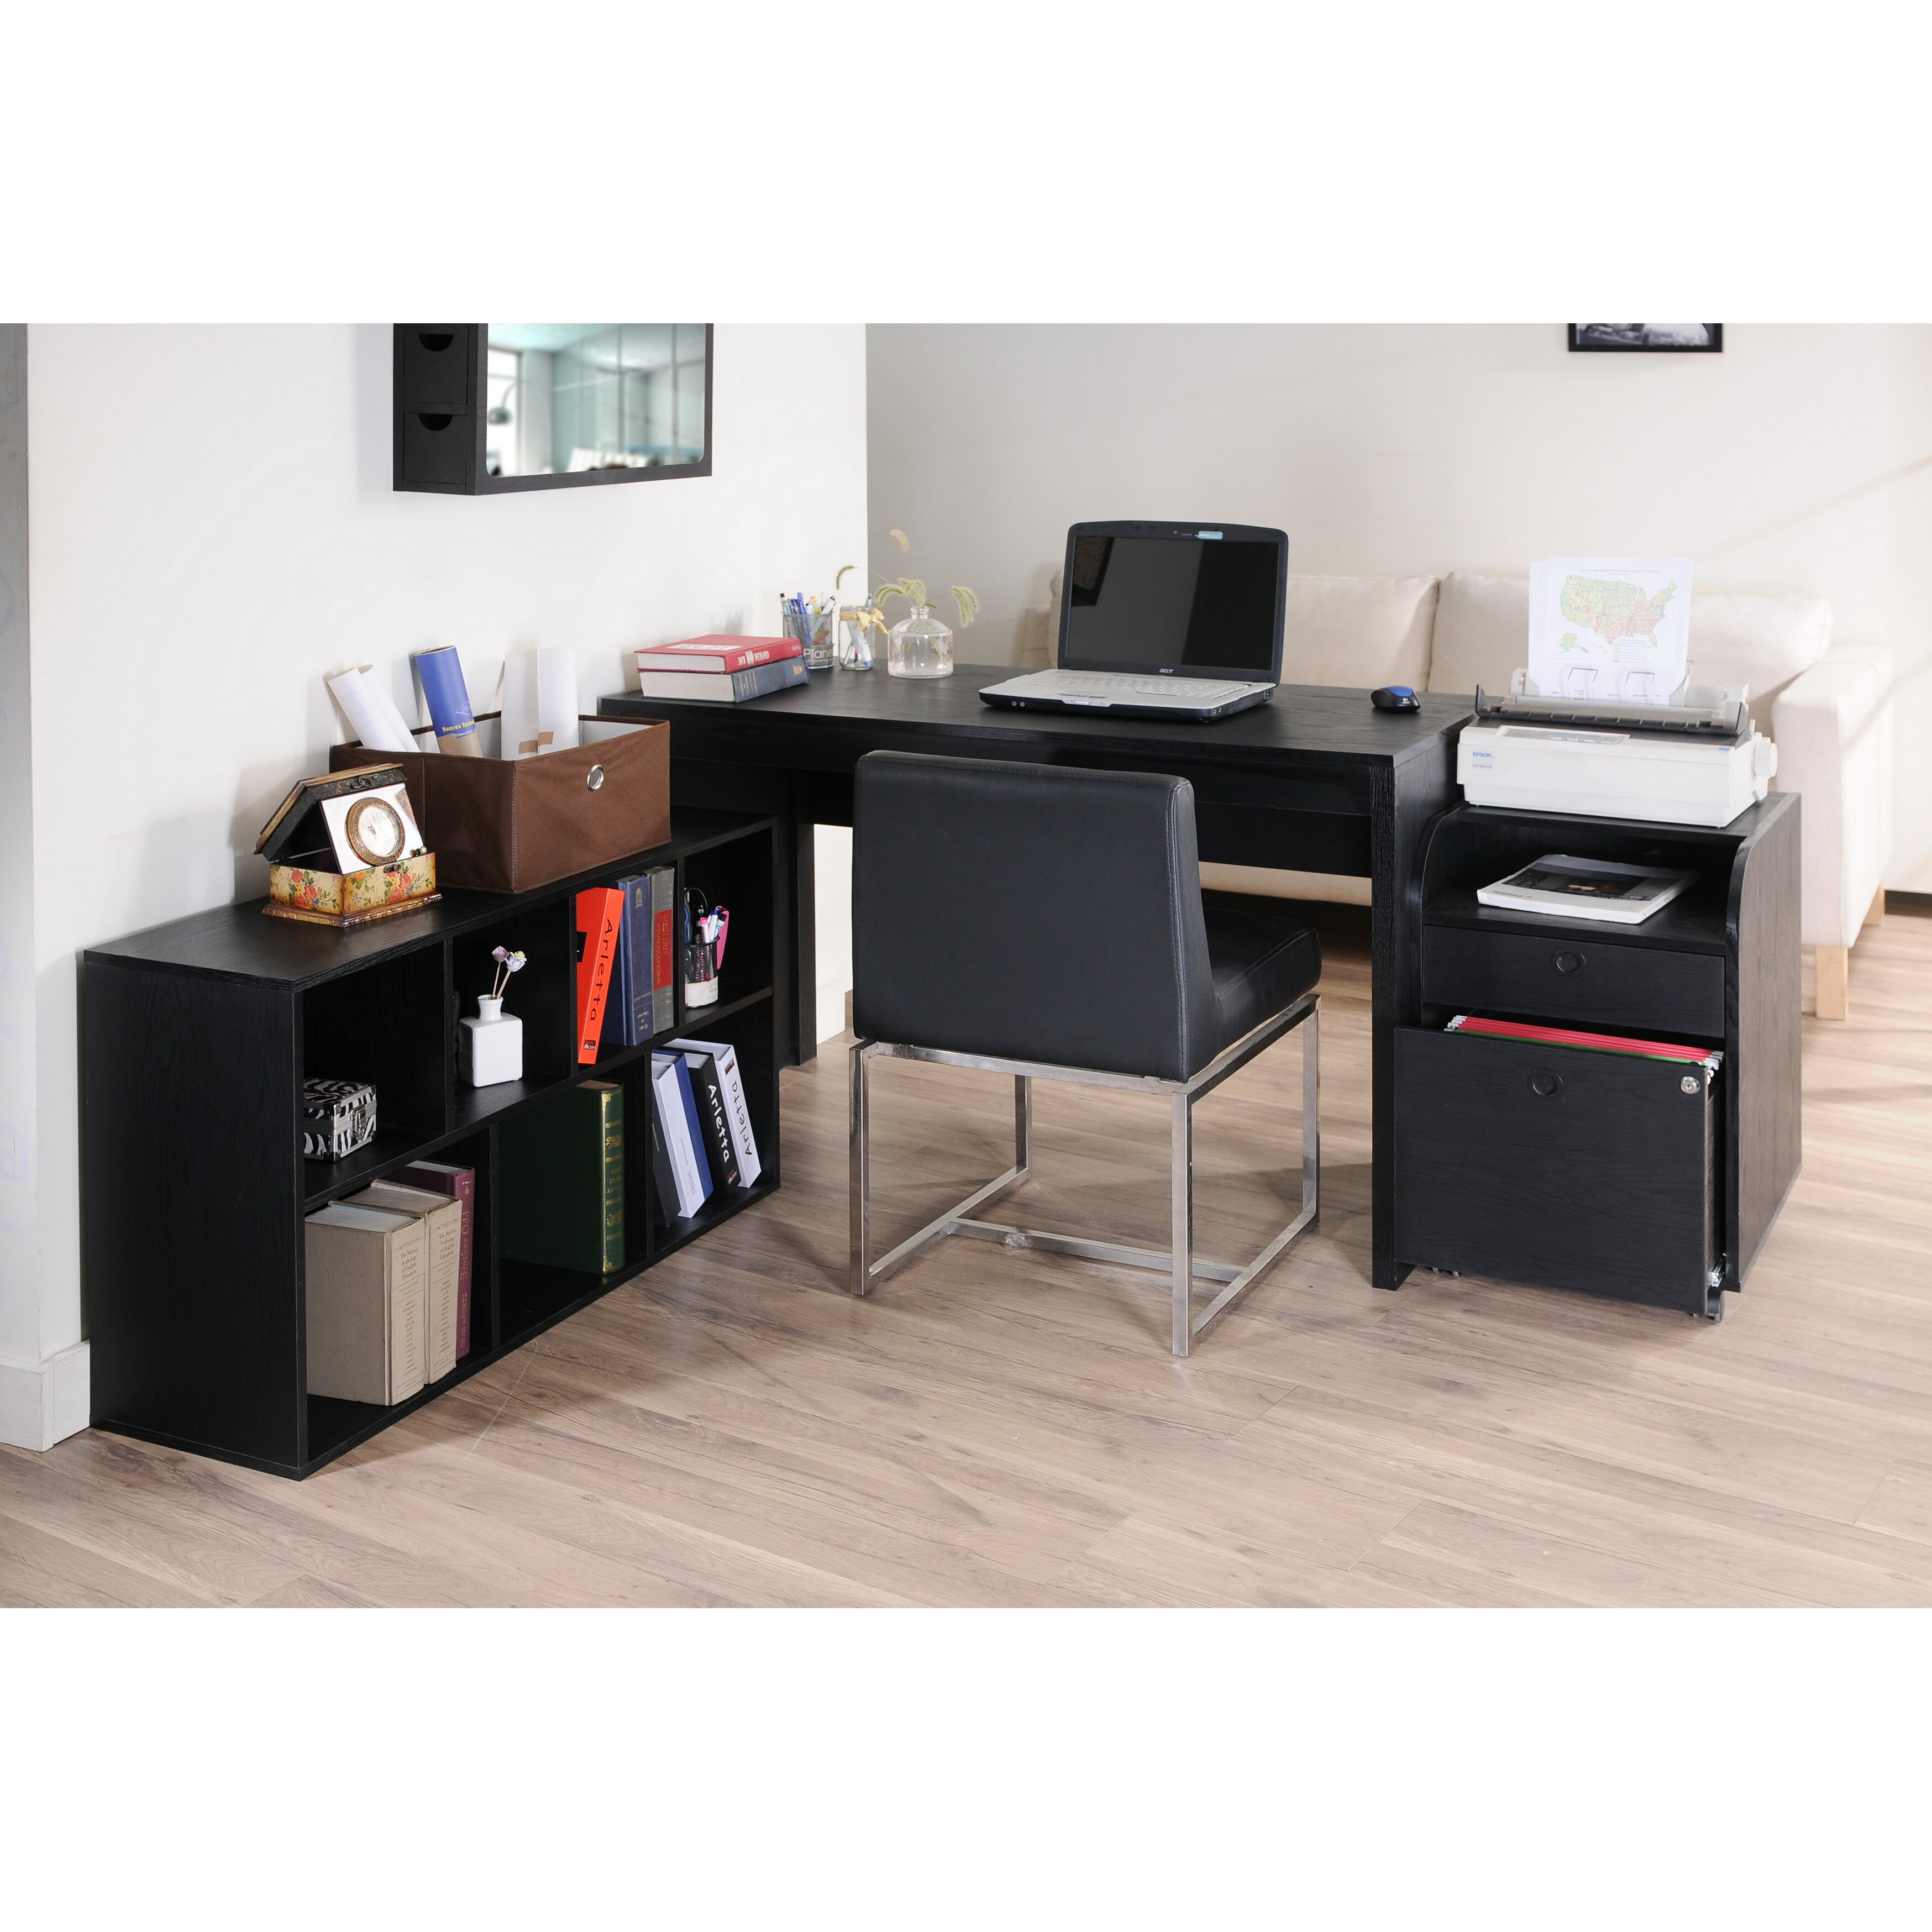 Zipcode™ Design Naomi 2 Piece Modular Computer Desk With. Wedding Table Setting. Desk And Bed Set. Inspirational Quotes For Office Desk. Table Easel